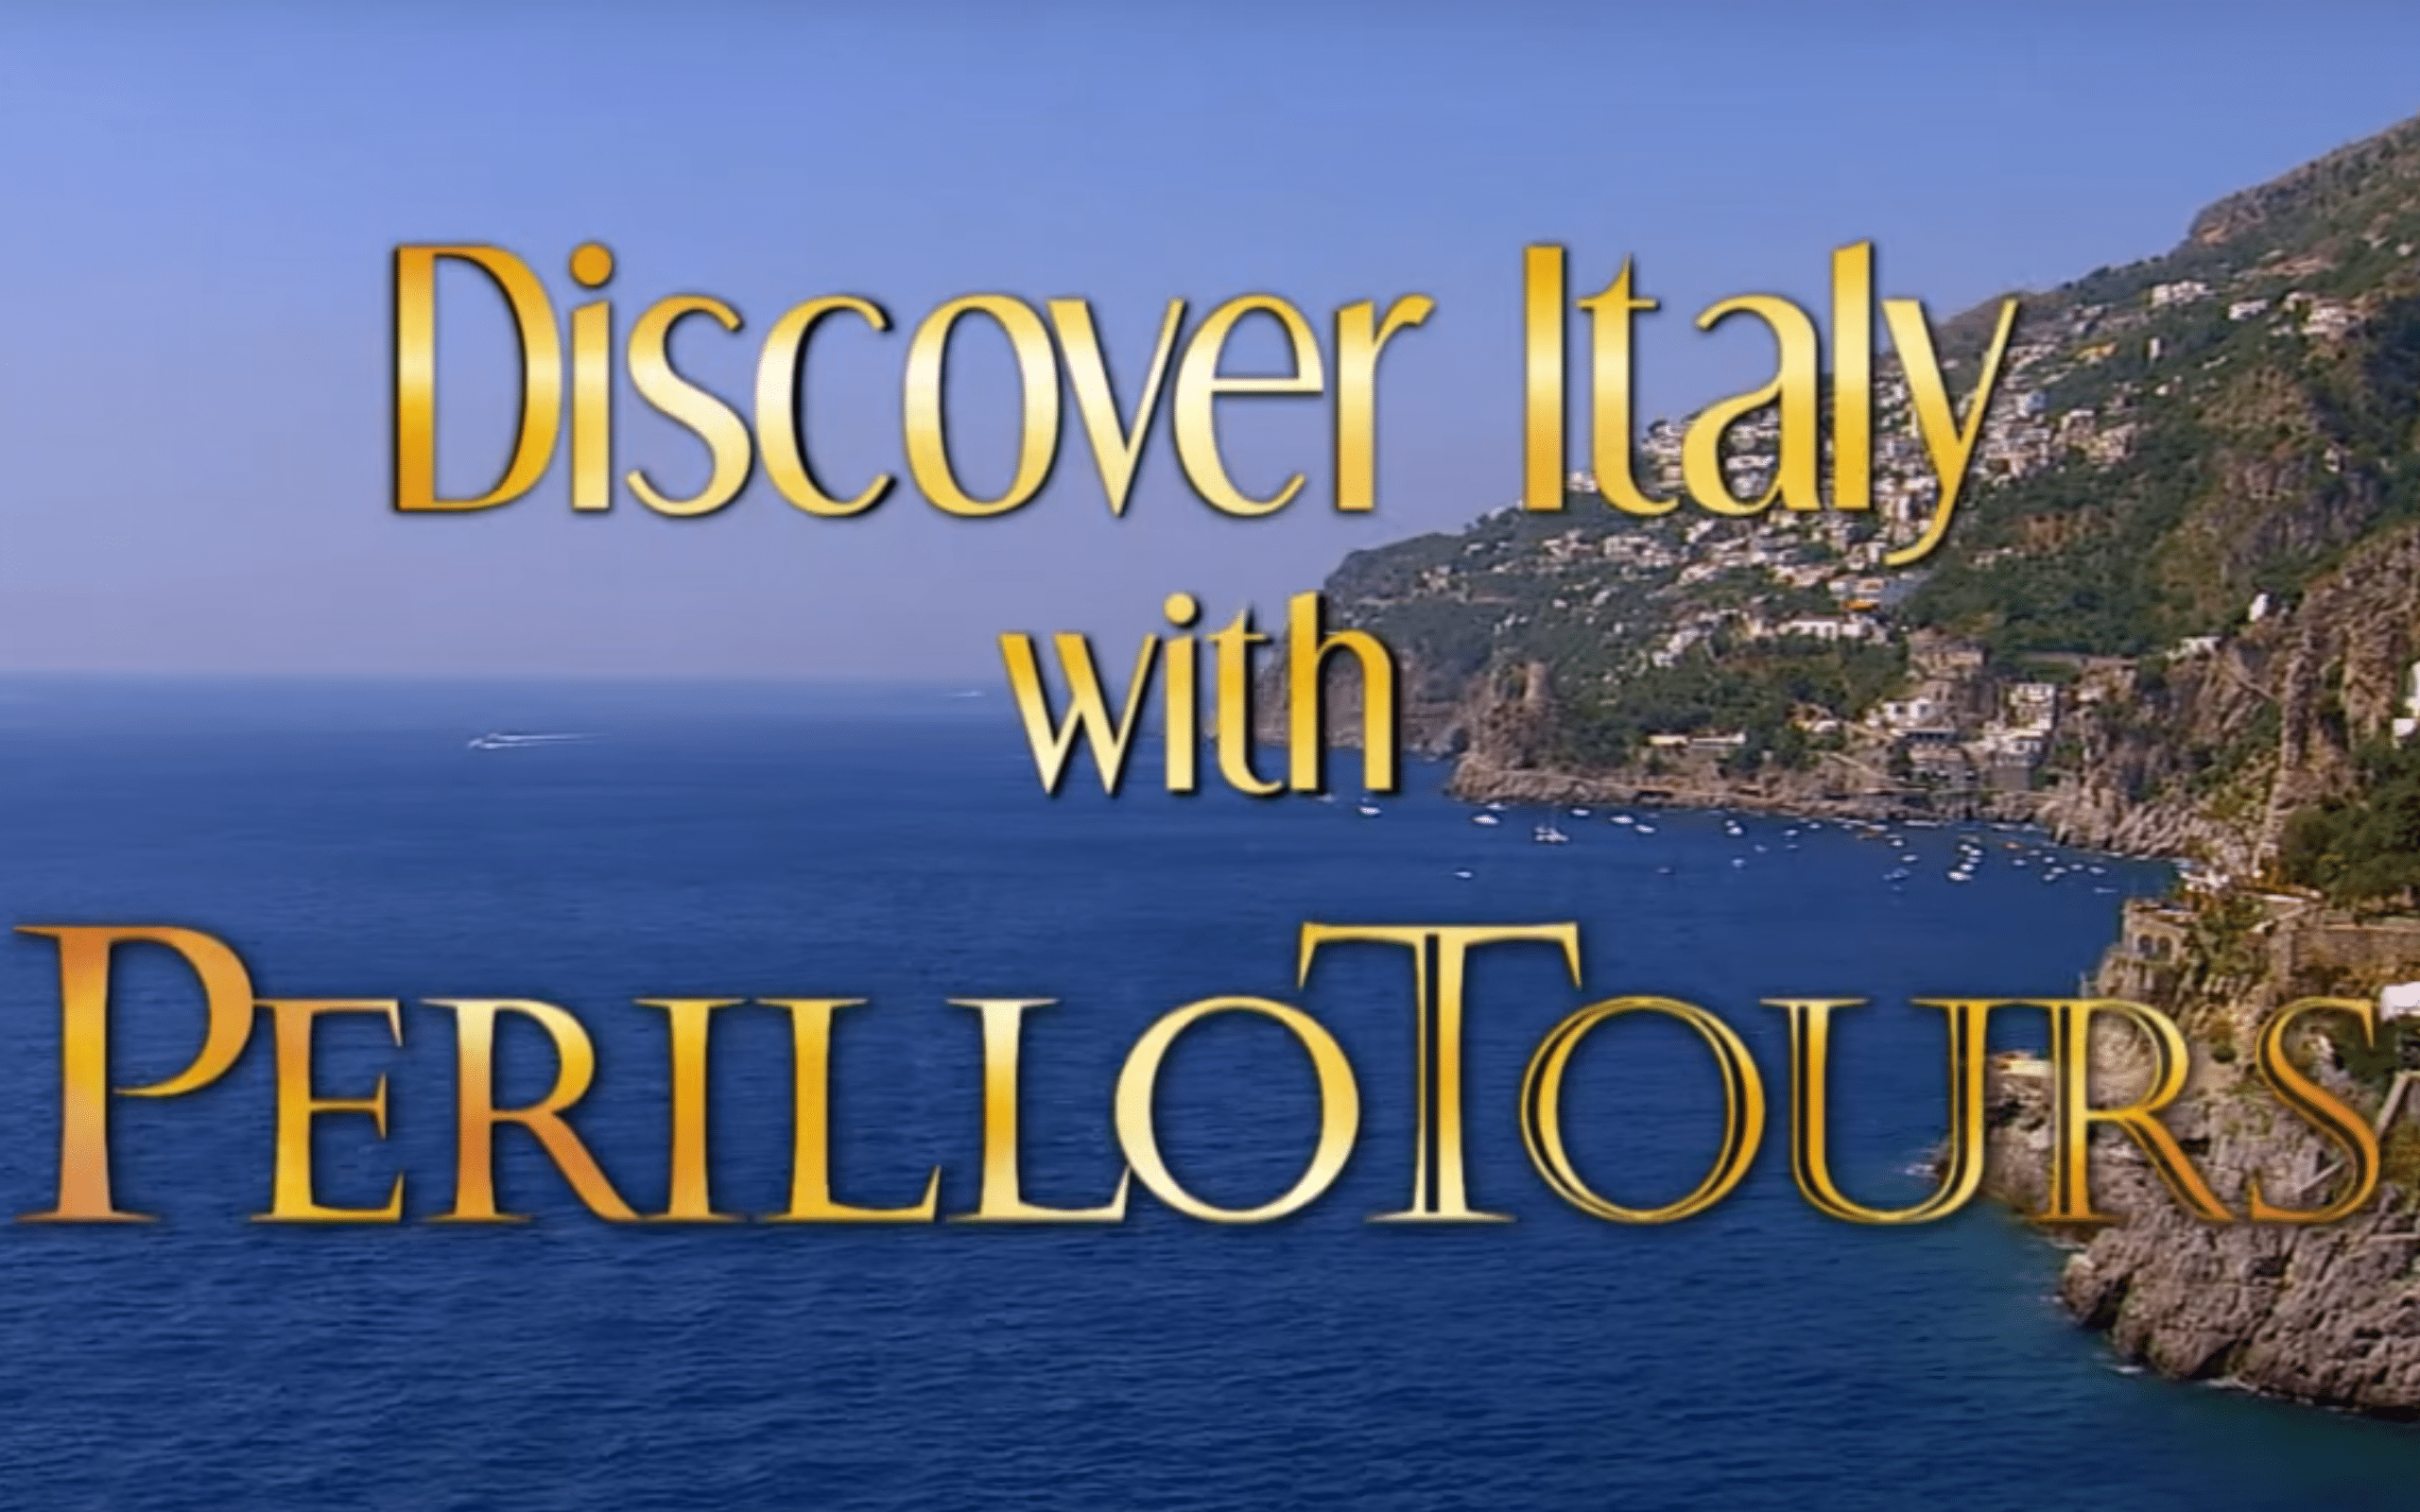 Perillo Tours Omnibus Commercial  Video Production by Merging Media